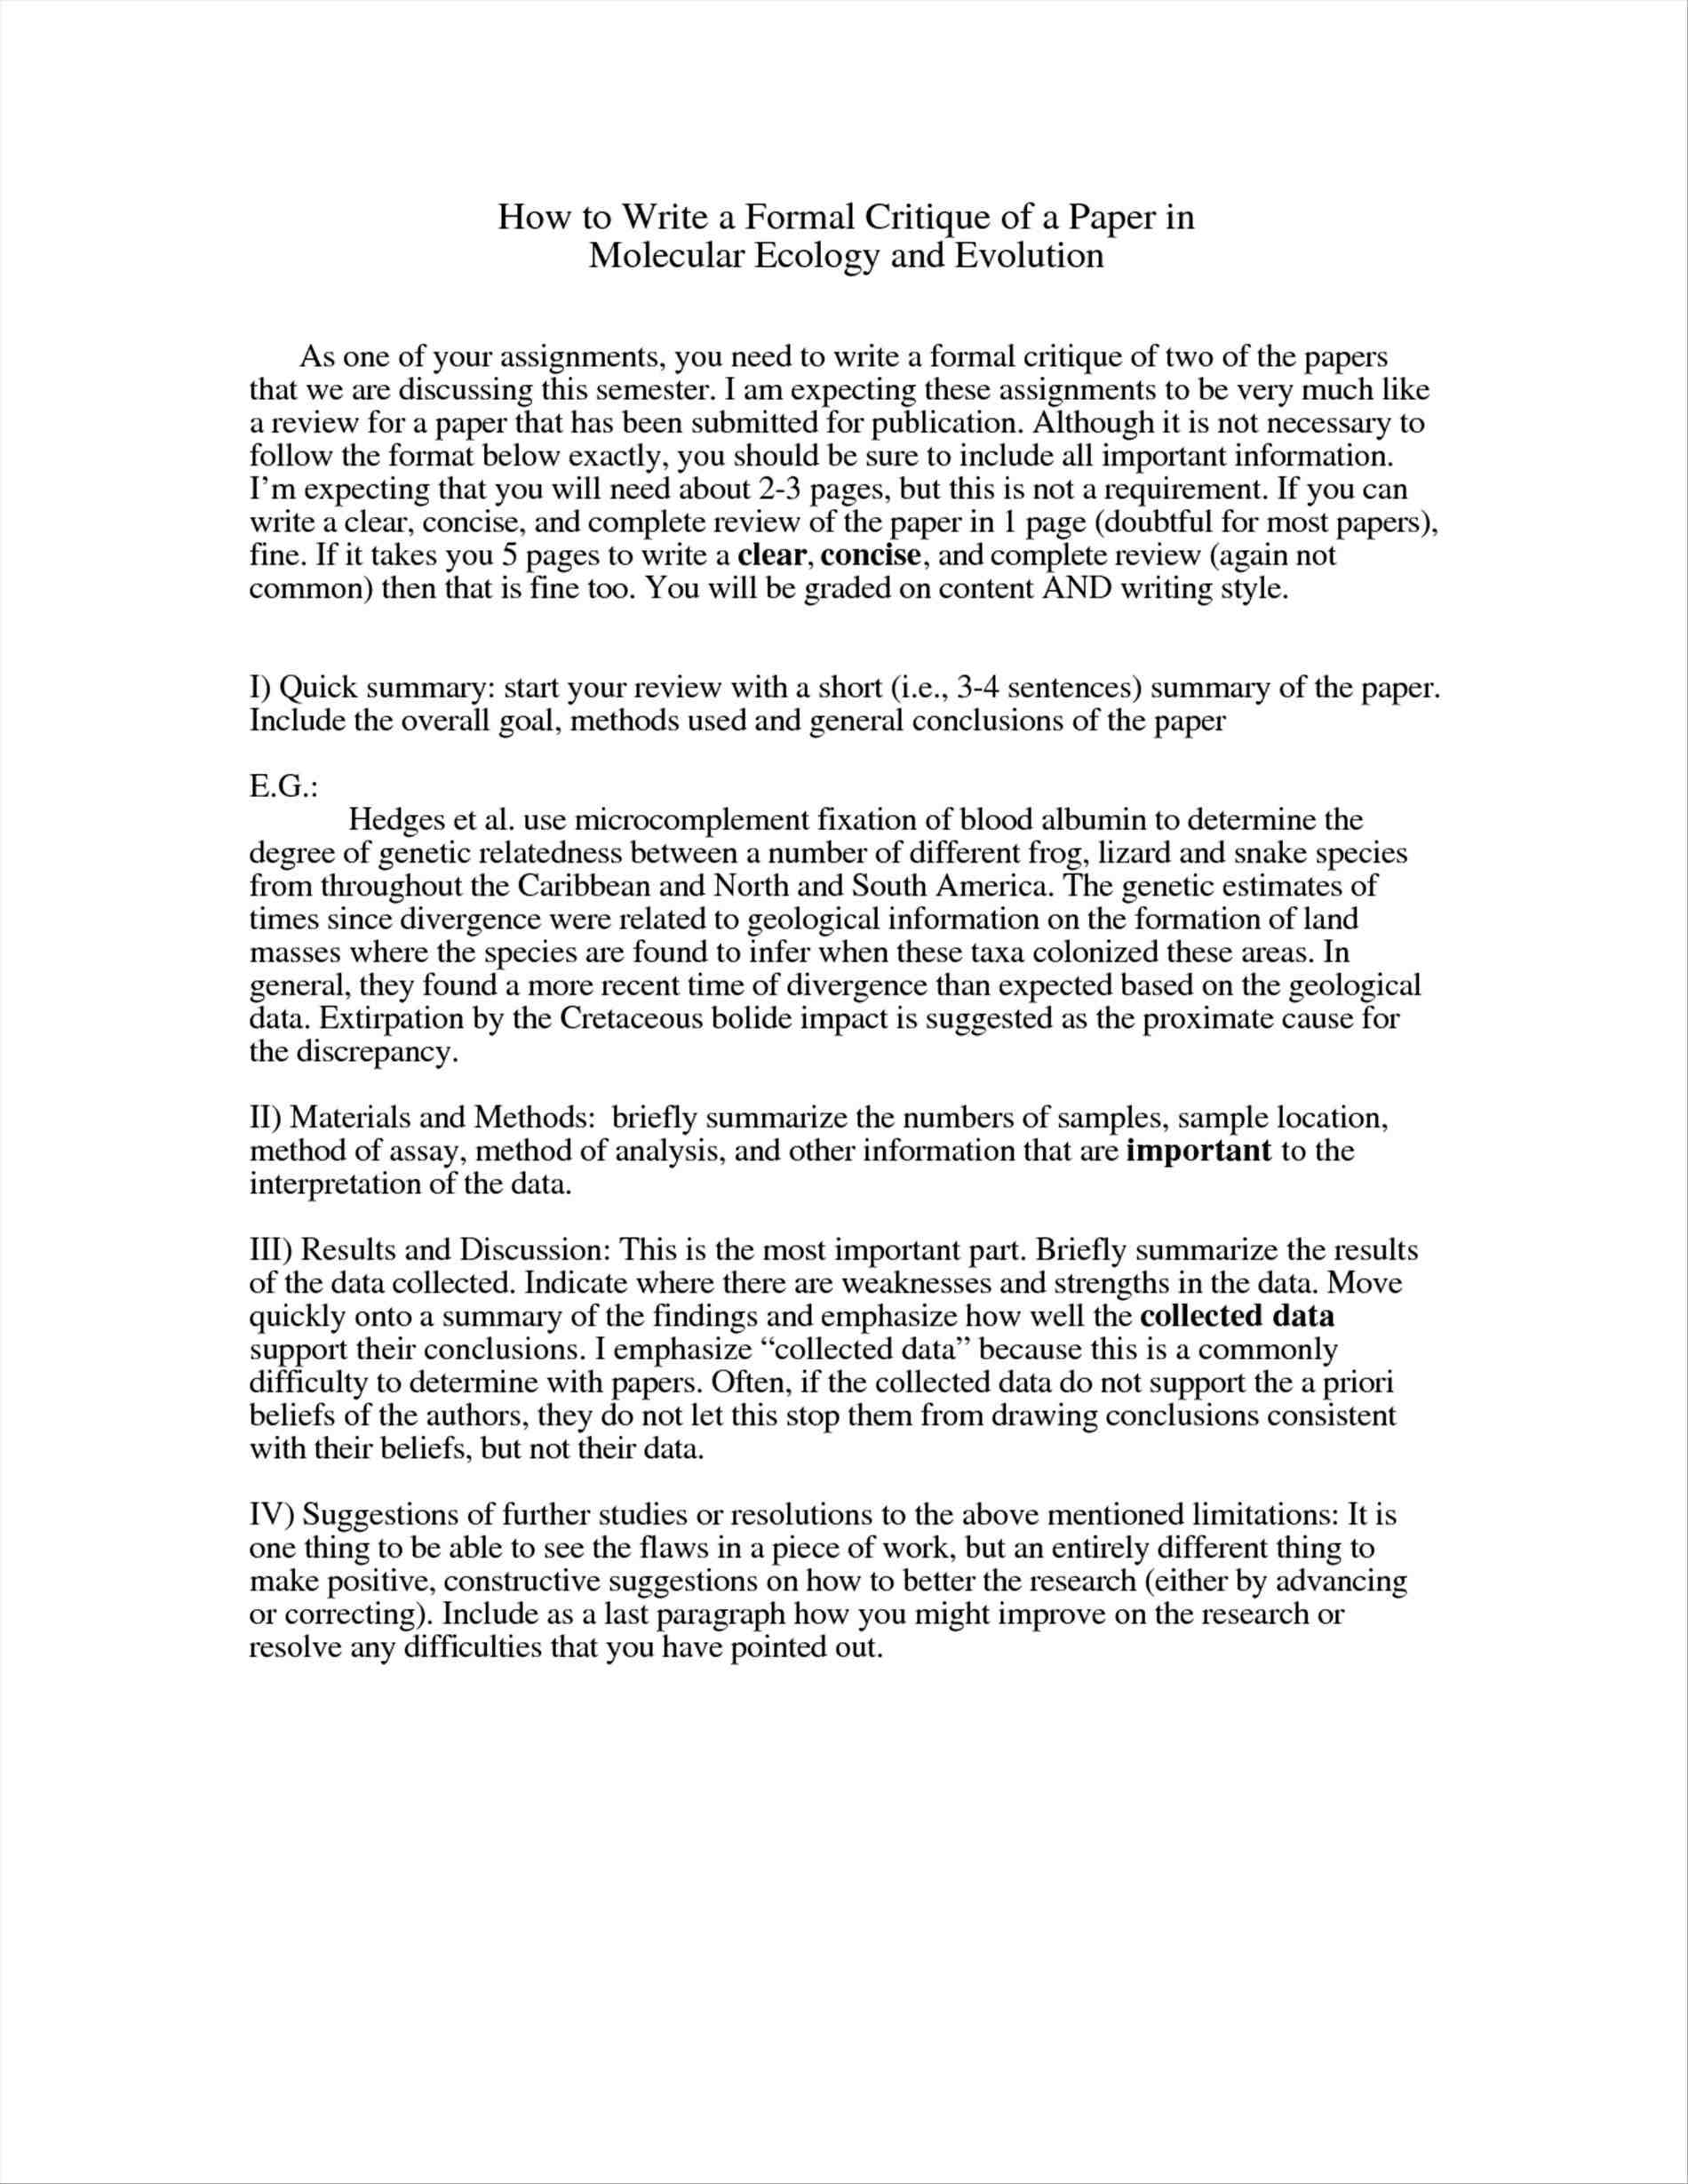 004 Example Of Abstract In Research Paperagalog And Articles On Overleaf Movie Rhjamesriverarmorycom Vita Borderhesisitle Shocking Picture Design Dissertation Rhskateareacom Journal Examples Awful Paper Tagalog Full